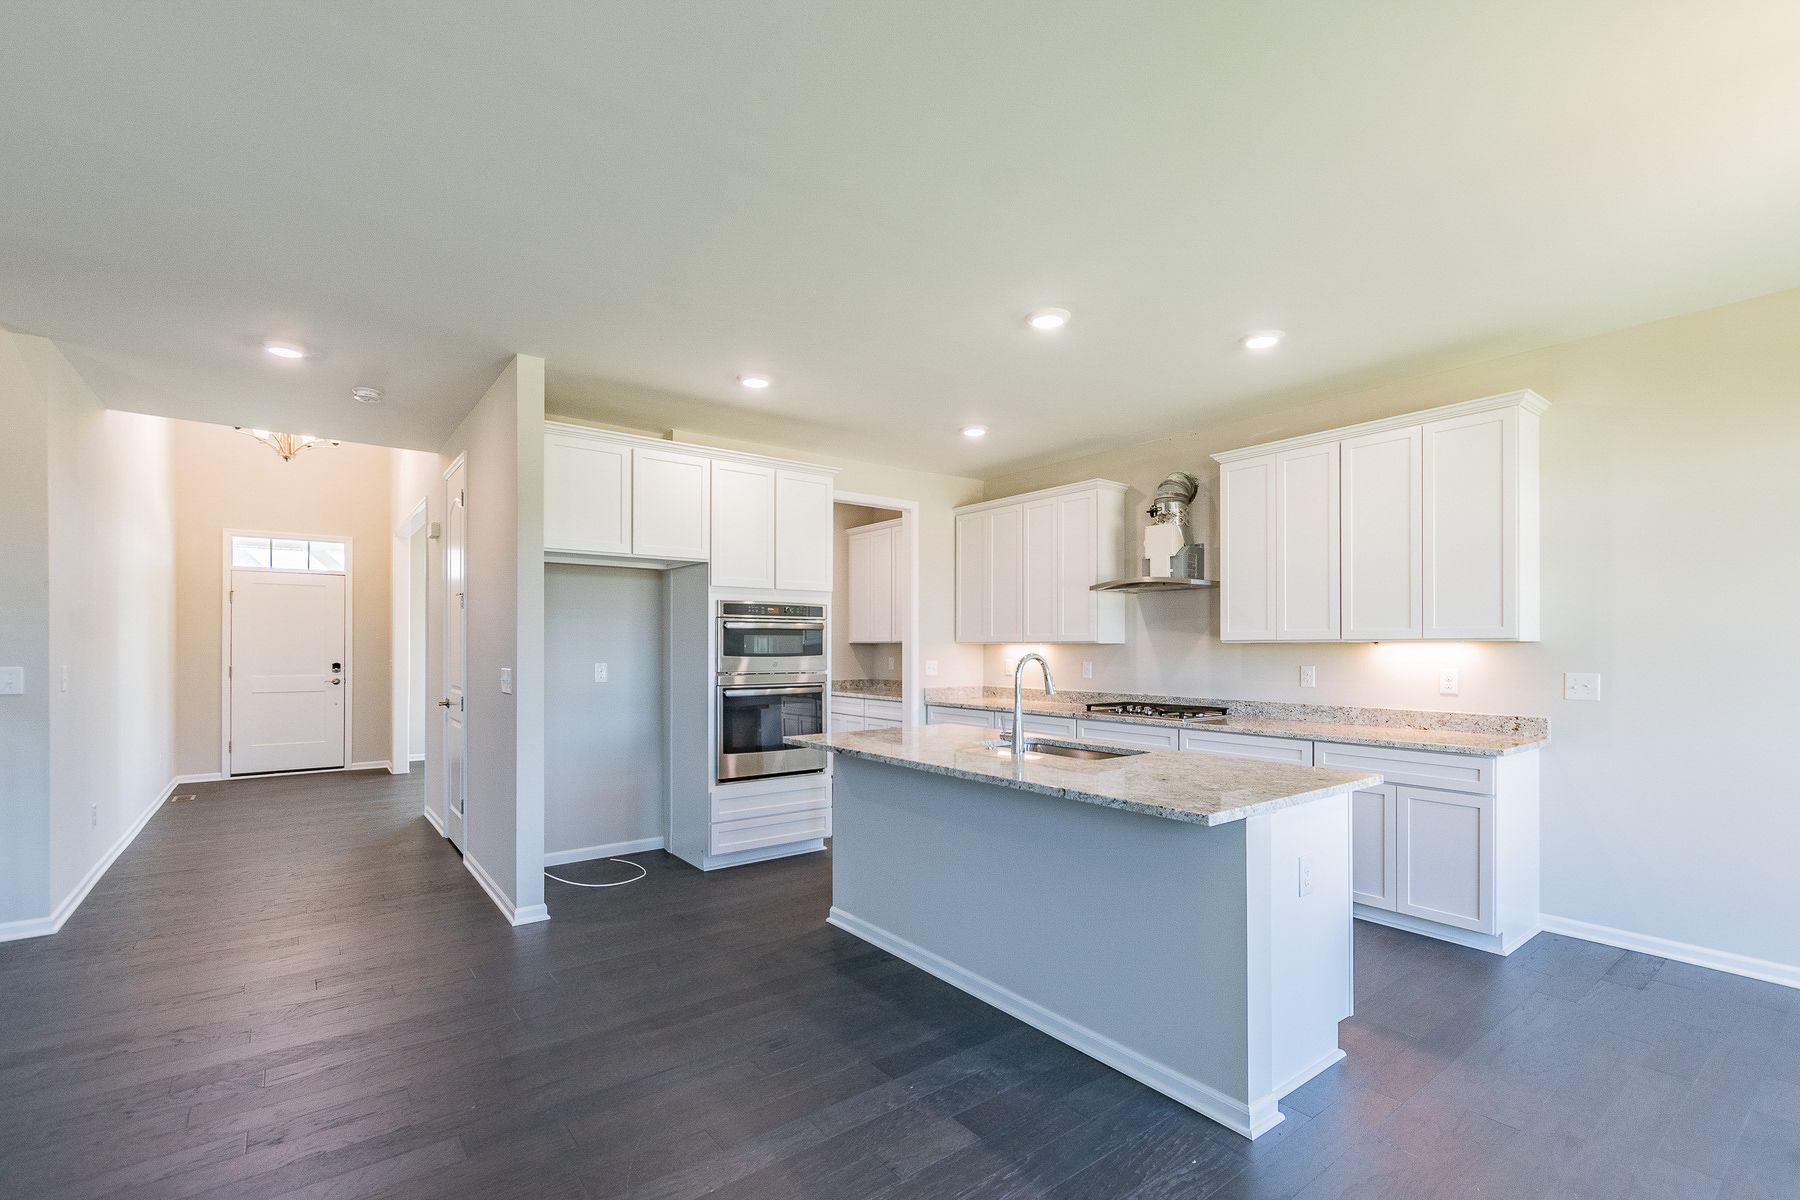 Kitchen featured in the Lyndale By M/I Homes in Detroit, MI